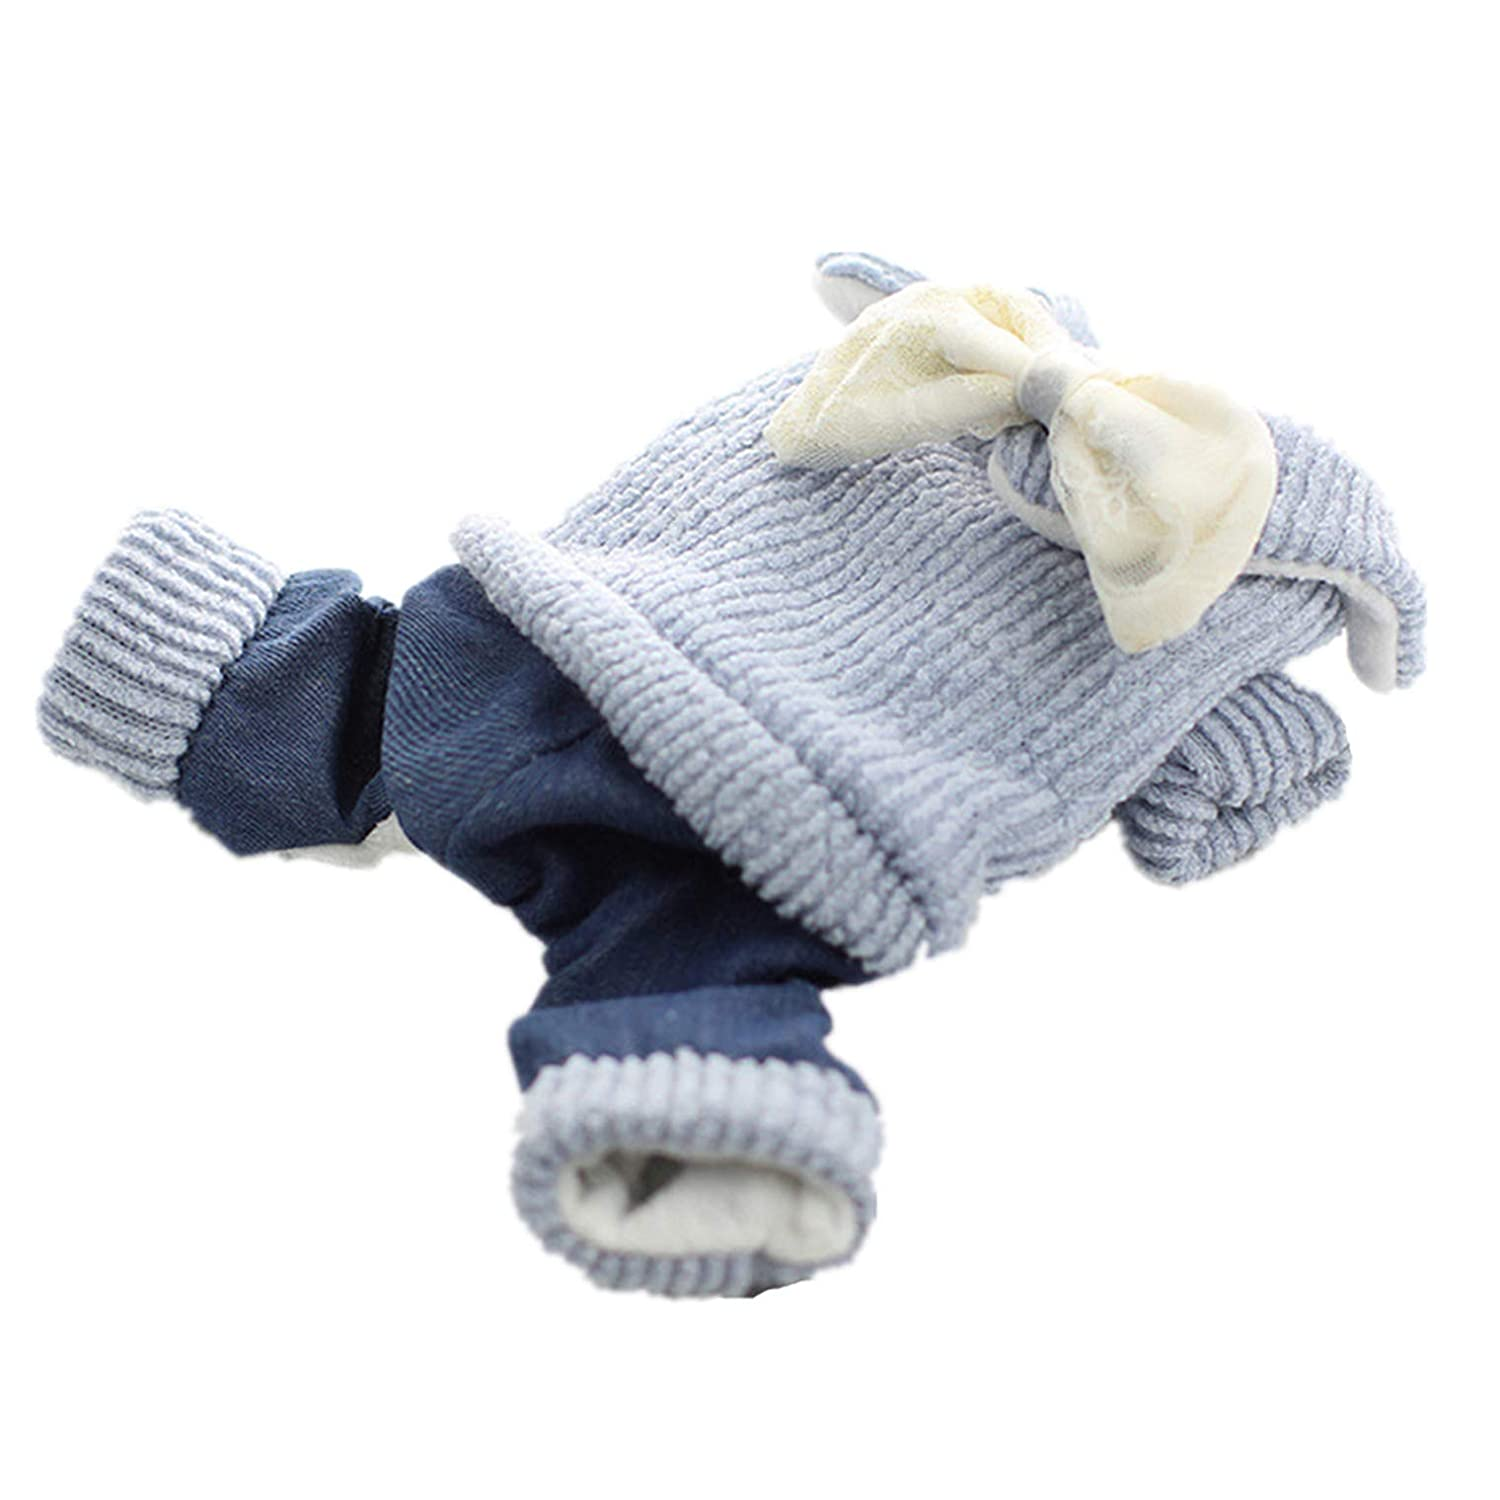 blueE XS blueE XS SENERY Winter Pet Dog Clothing Coat,Cat Jacket Coat Sweater Knitted Clothes Warm Fleece Puppy Jumpsuit Hoodie